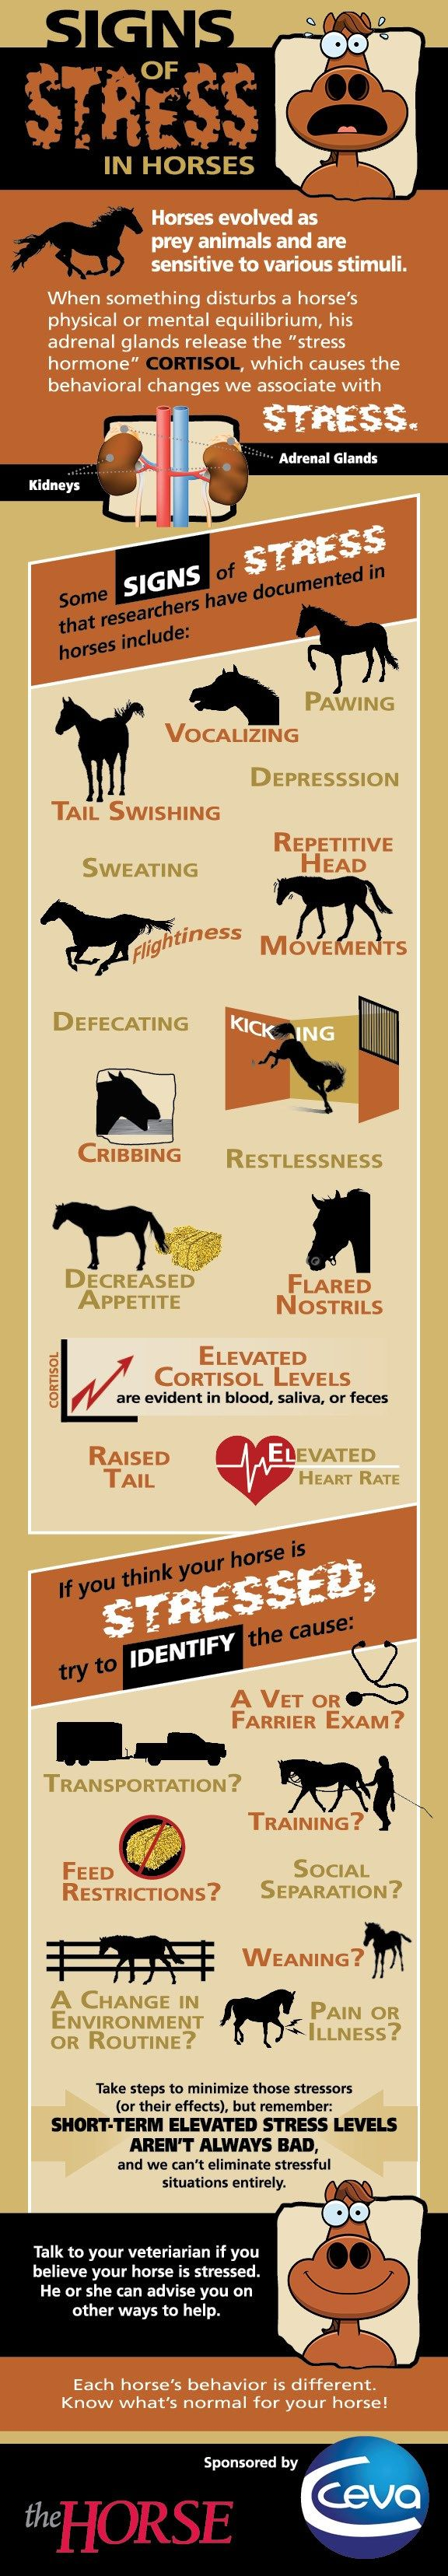 Infographic: Signs of Stress in Horses | TheHorse.com